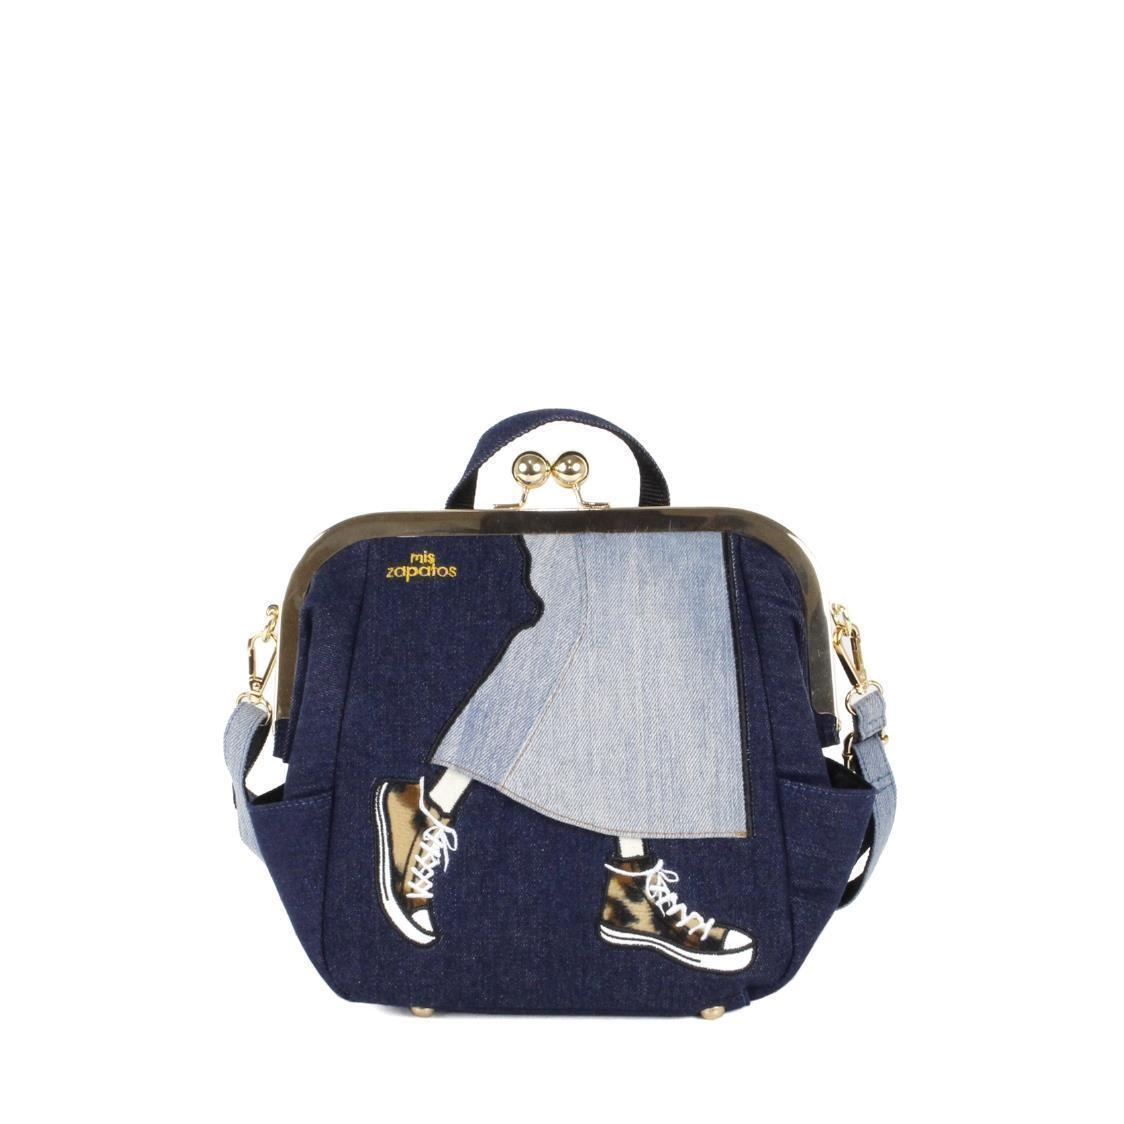 3-Way Use Jeans Skirt with Sneakers Handbag Using Ball Clasp Closure Navy